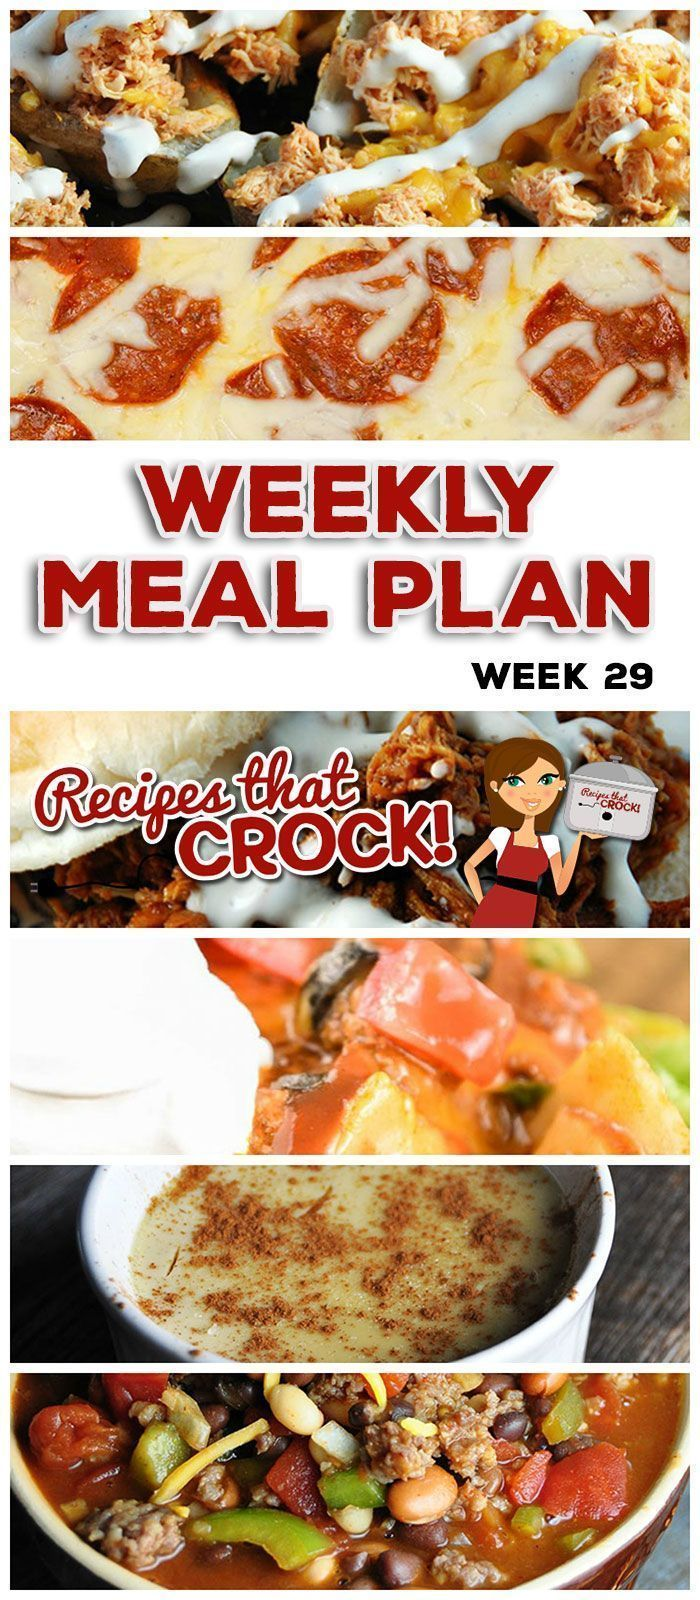 This week's weekly menu features Crock Pot BBQ Ranch Chicken Buns, Crock Pot Taco Ravioli Casserole, Crock Pot 3 Bean Pork Chili, Crock Pot Rosemary Garlic Pork Loin, Crock Pot Parsley Potatoes, Crock Pot Pizza with Mac 'n Cheese Crust, Crock Pot Vanilla Custard, Crock Pot Buffalo Chicken Potato Skins and Crock Pot Apple Coffee Cake.